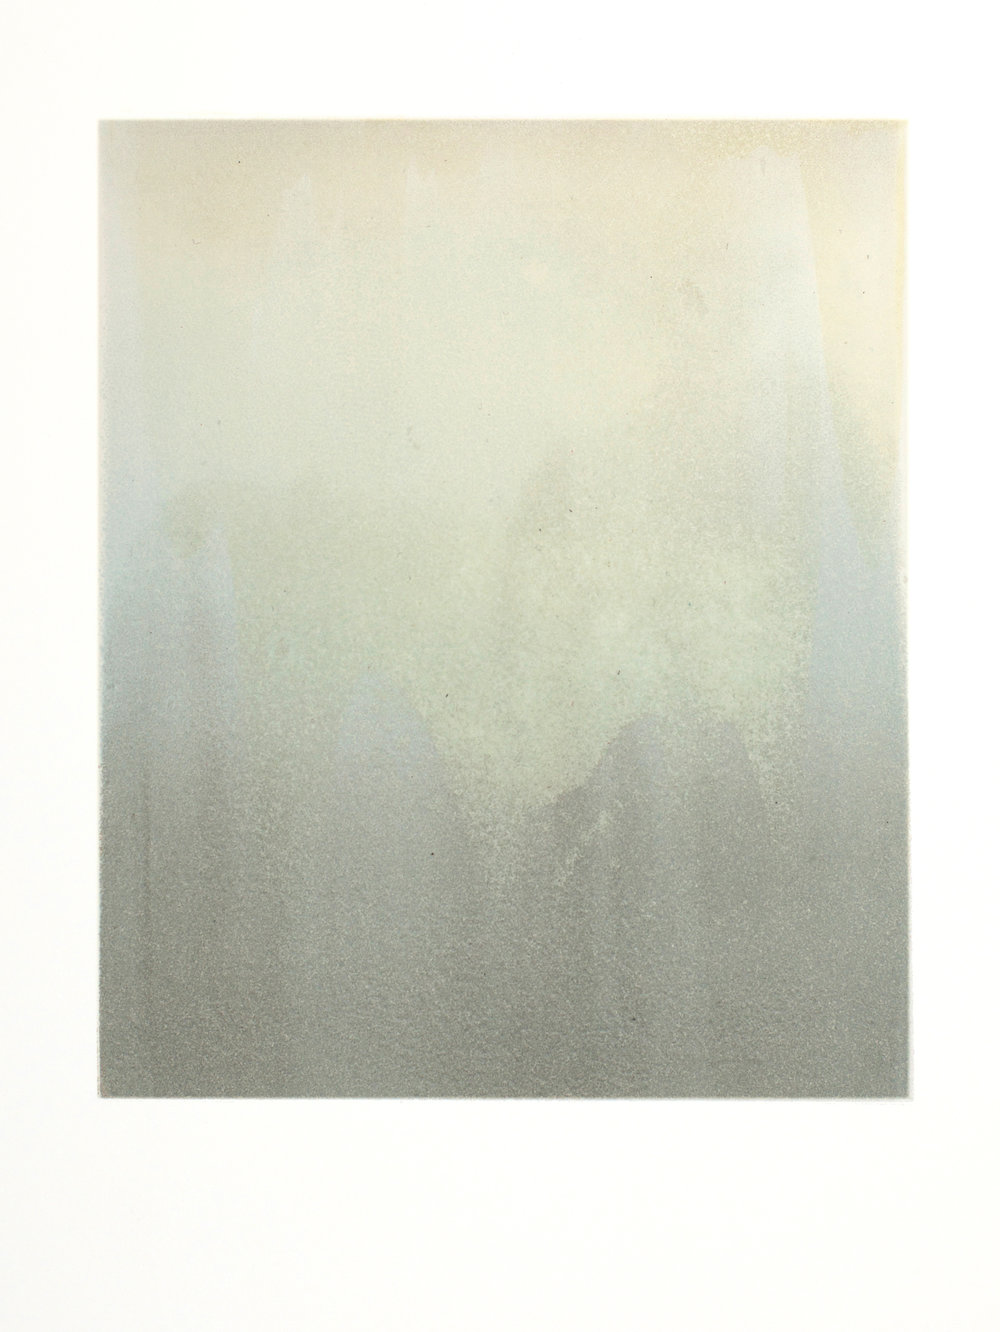 Untitled (gloss, from Overlap series)